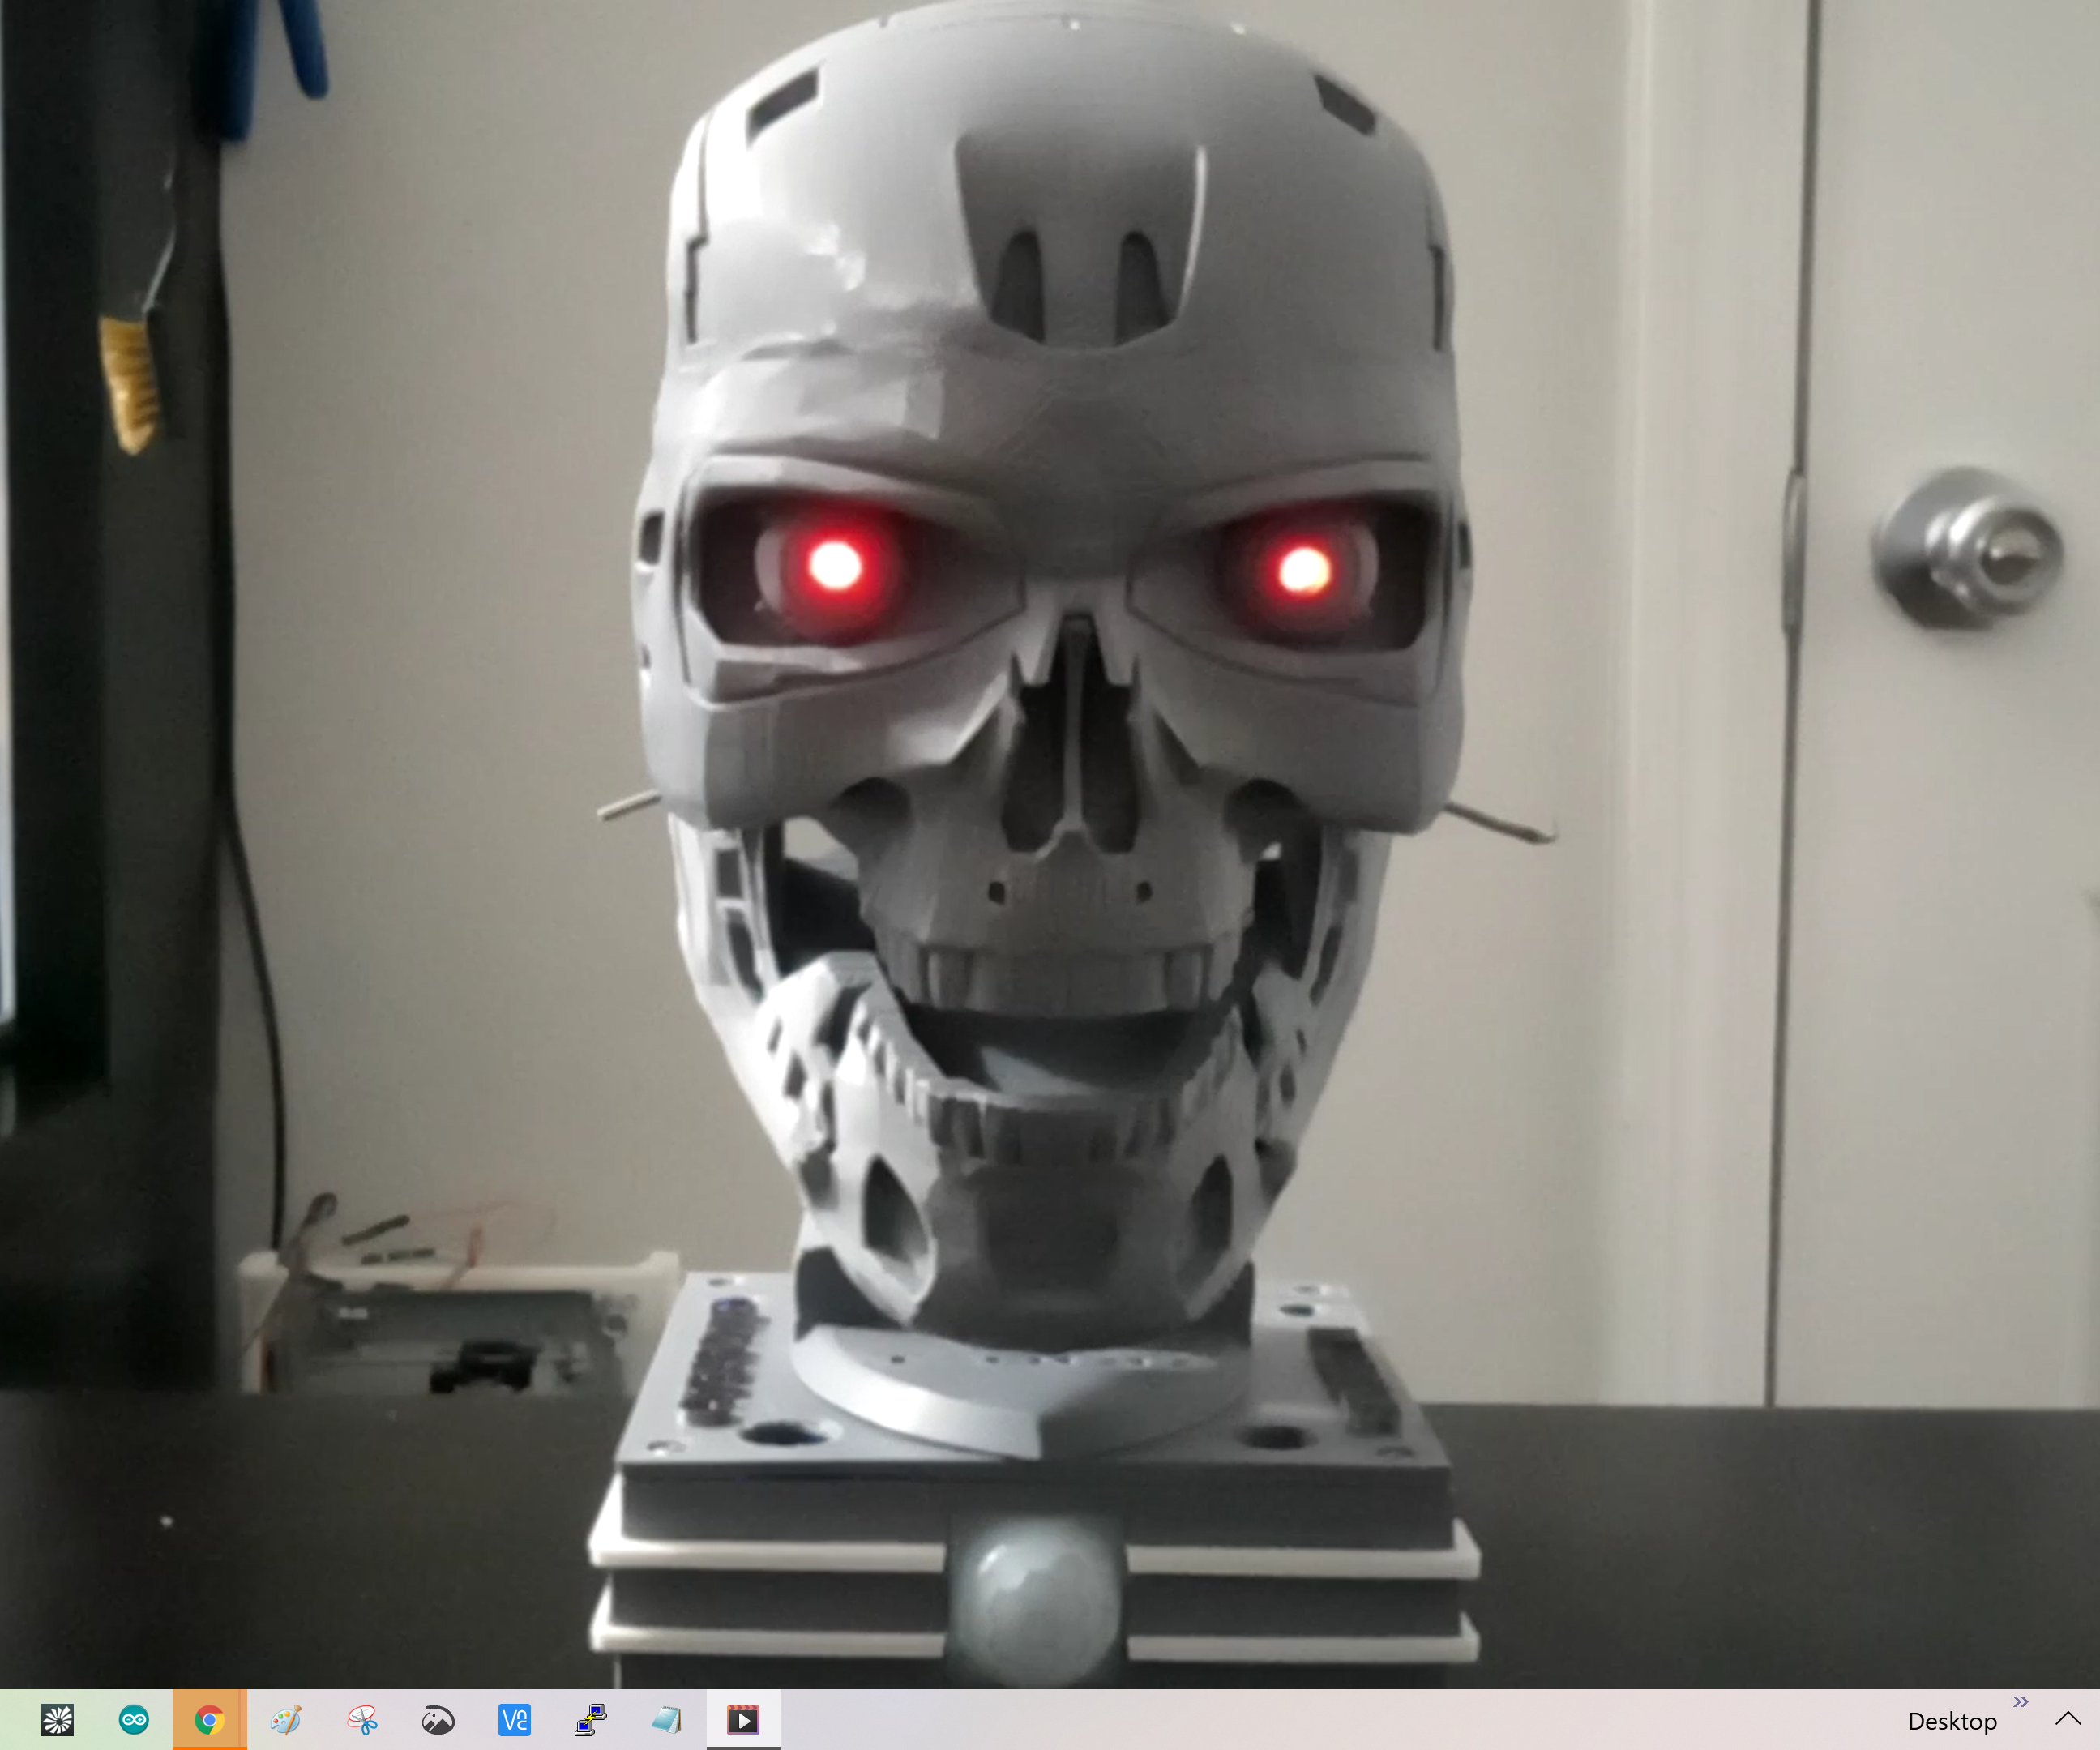 The Glowing Eyes Terminator T-800 Exo-skull